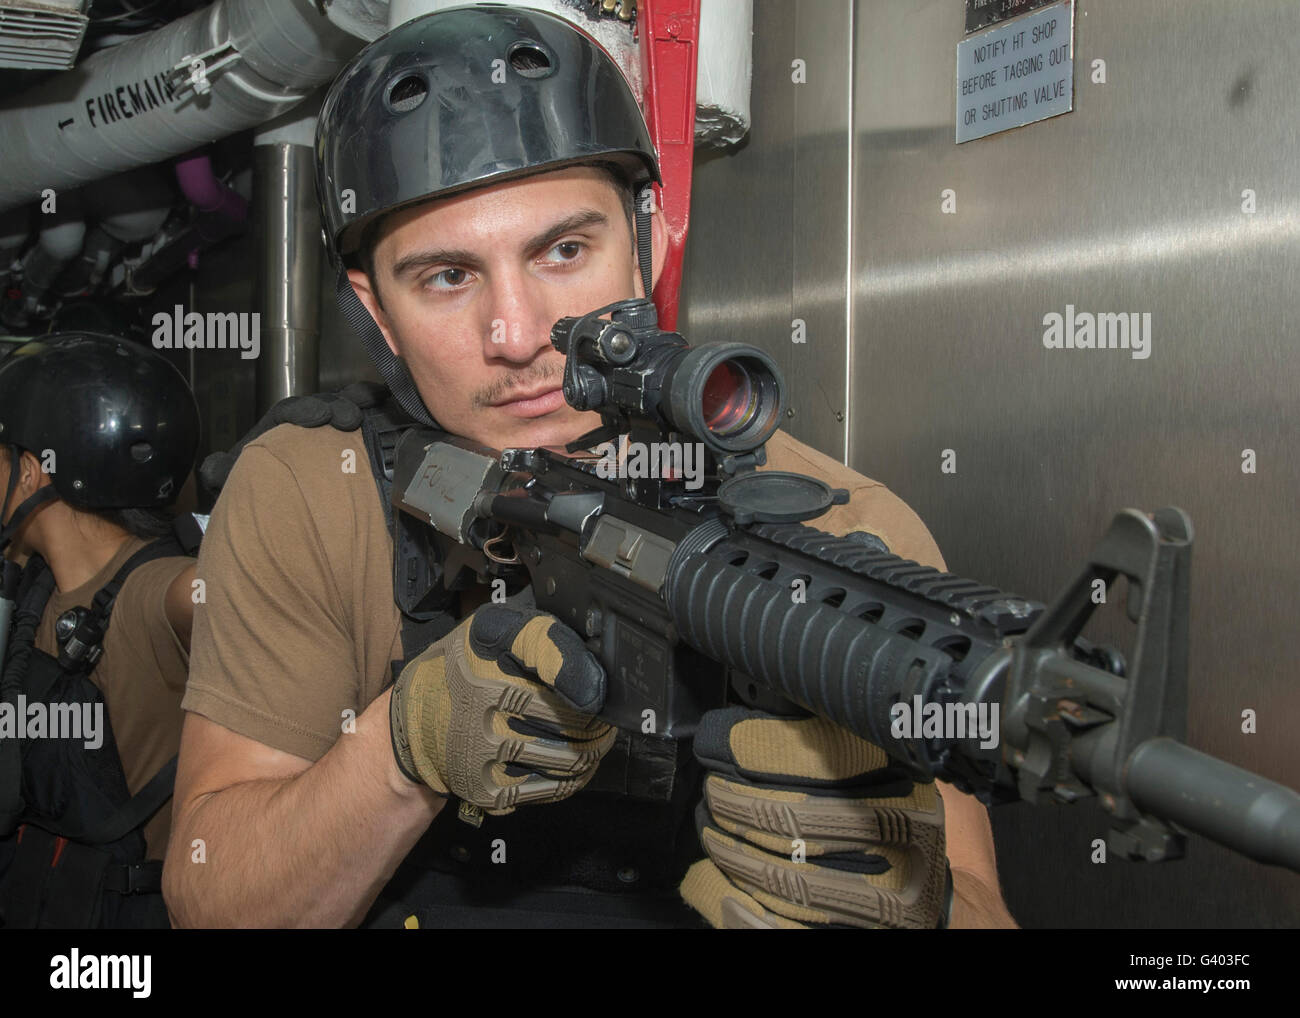 Member of the visit, board, search and seizure team providing cover. - Stock Image